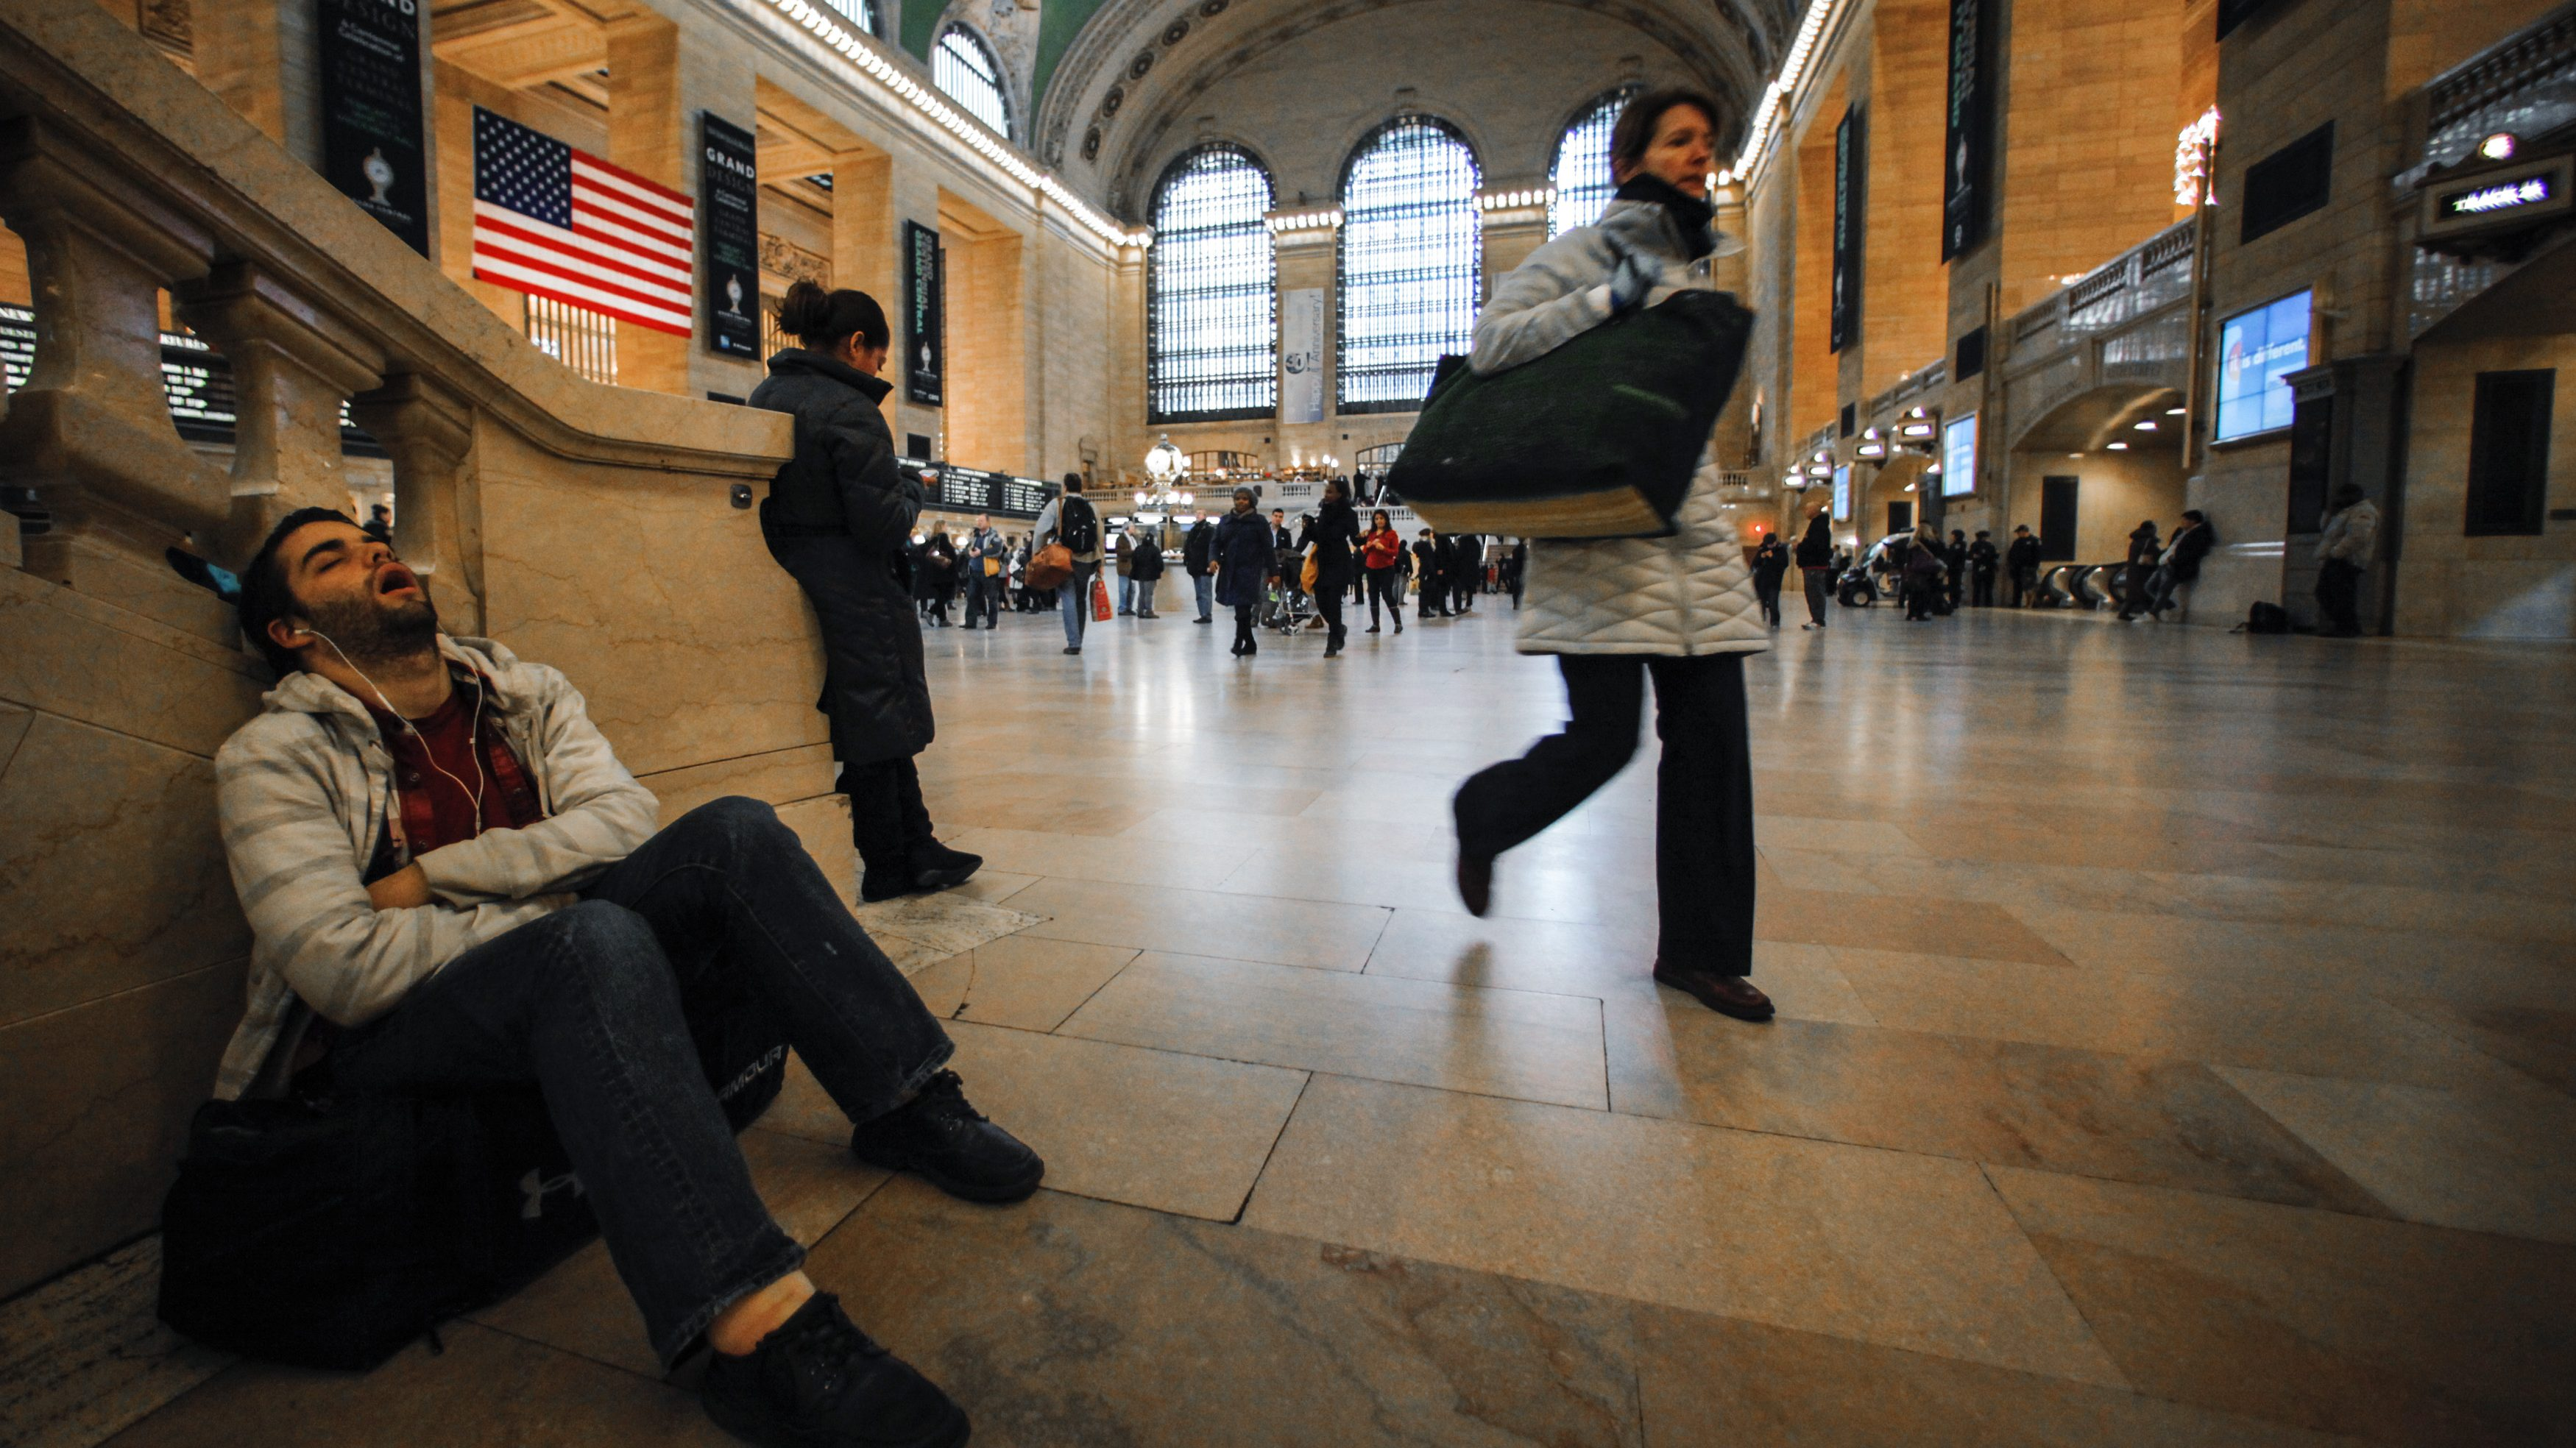 A commuter takes a nap before his train departs from the Grand Central Station in New York